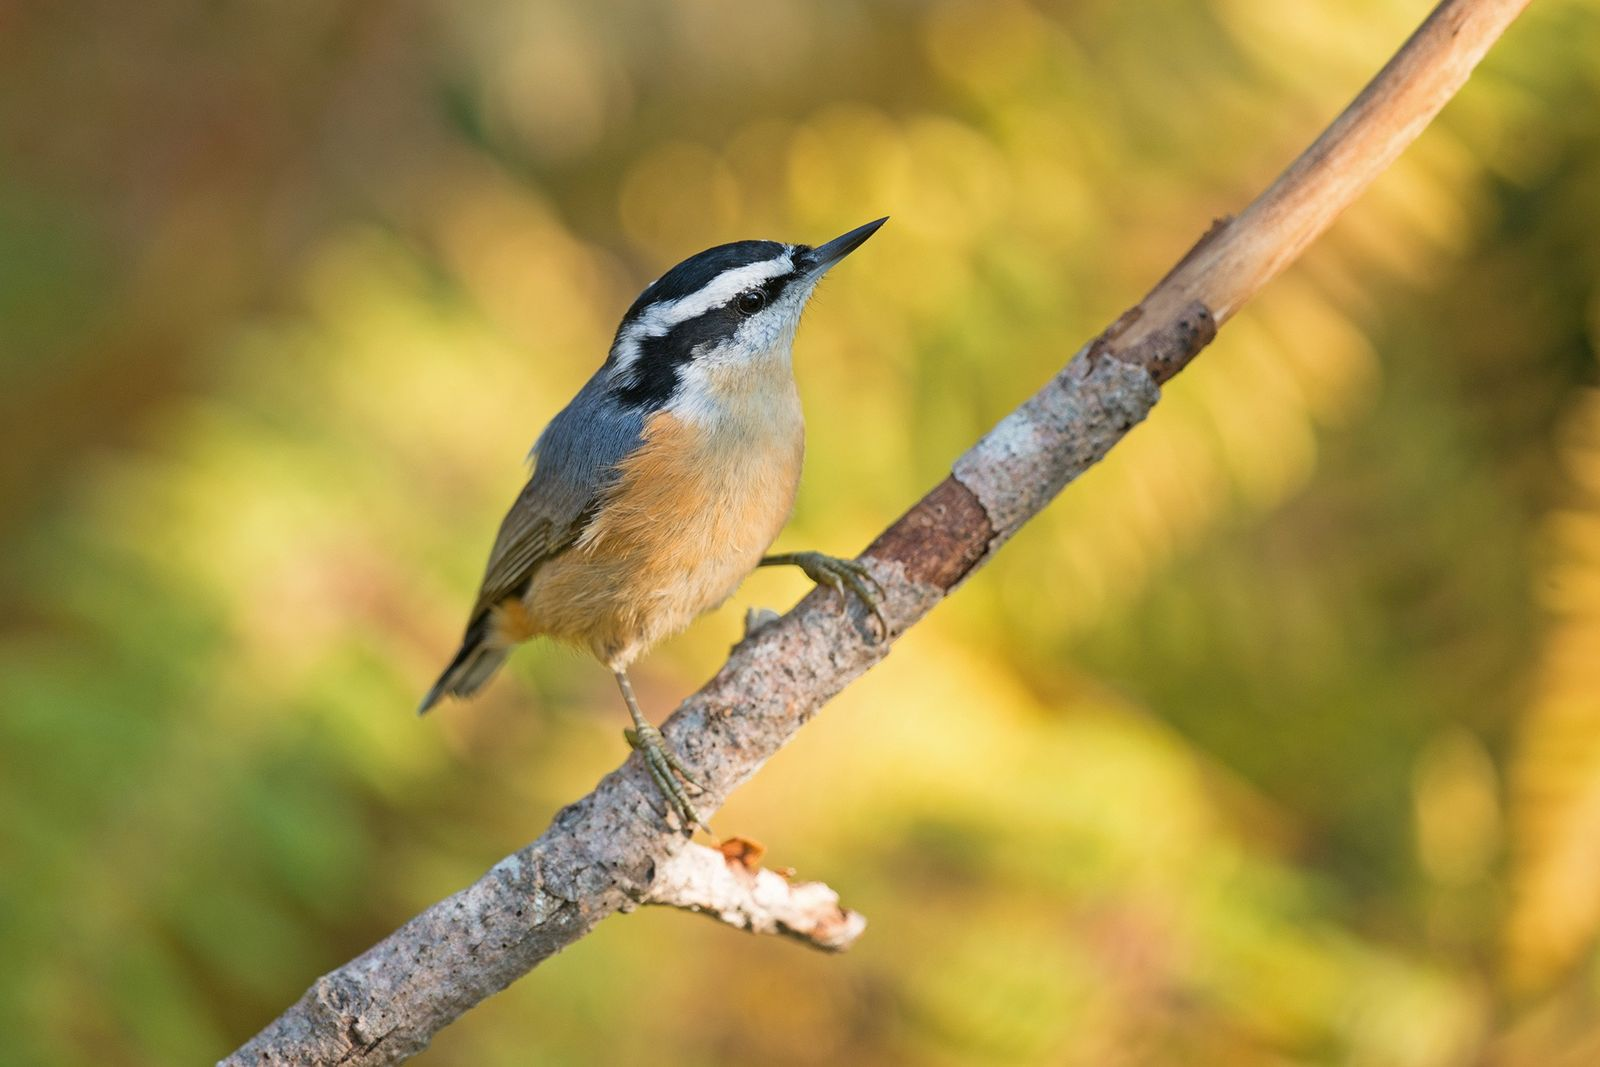 These birds 'retweet' alarm calls—but are careful about spreading rumours